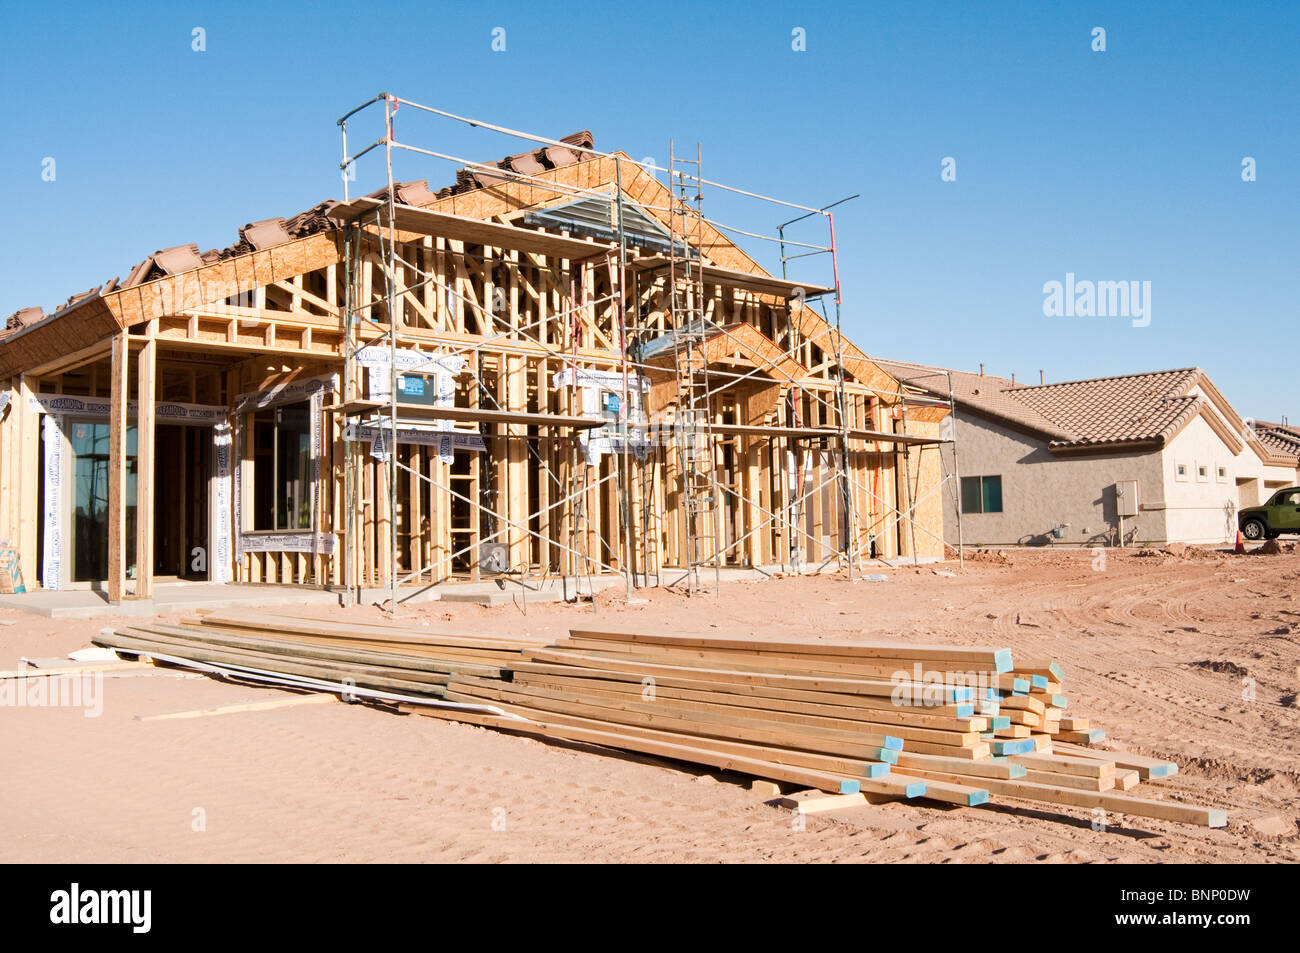 Building materials are stacked on the construction site for House building contractors